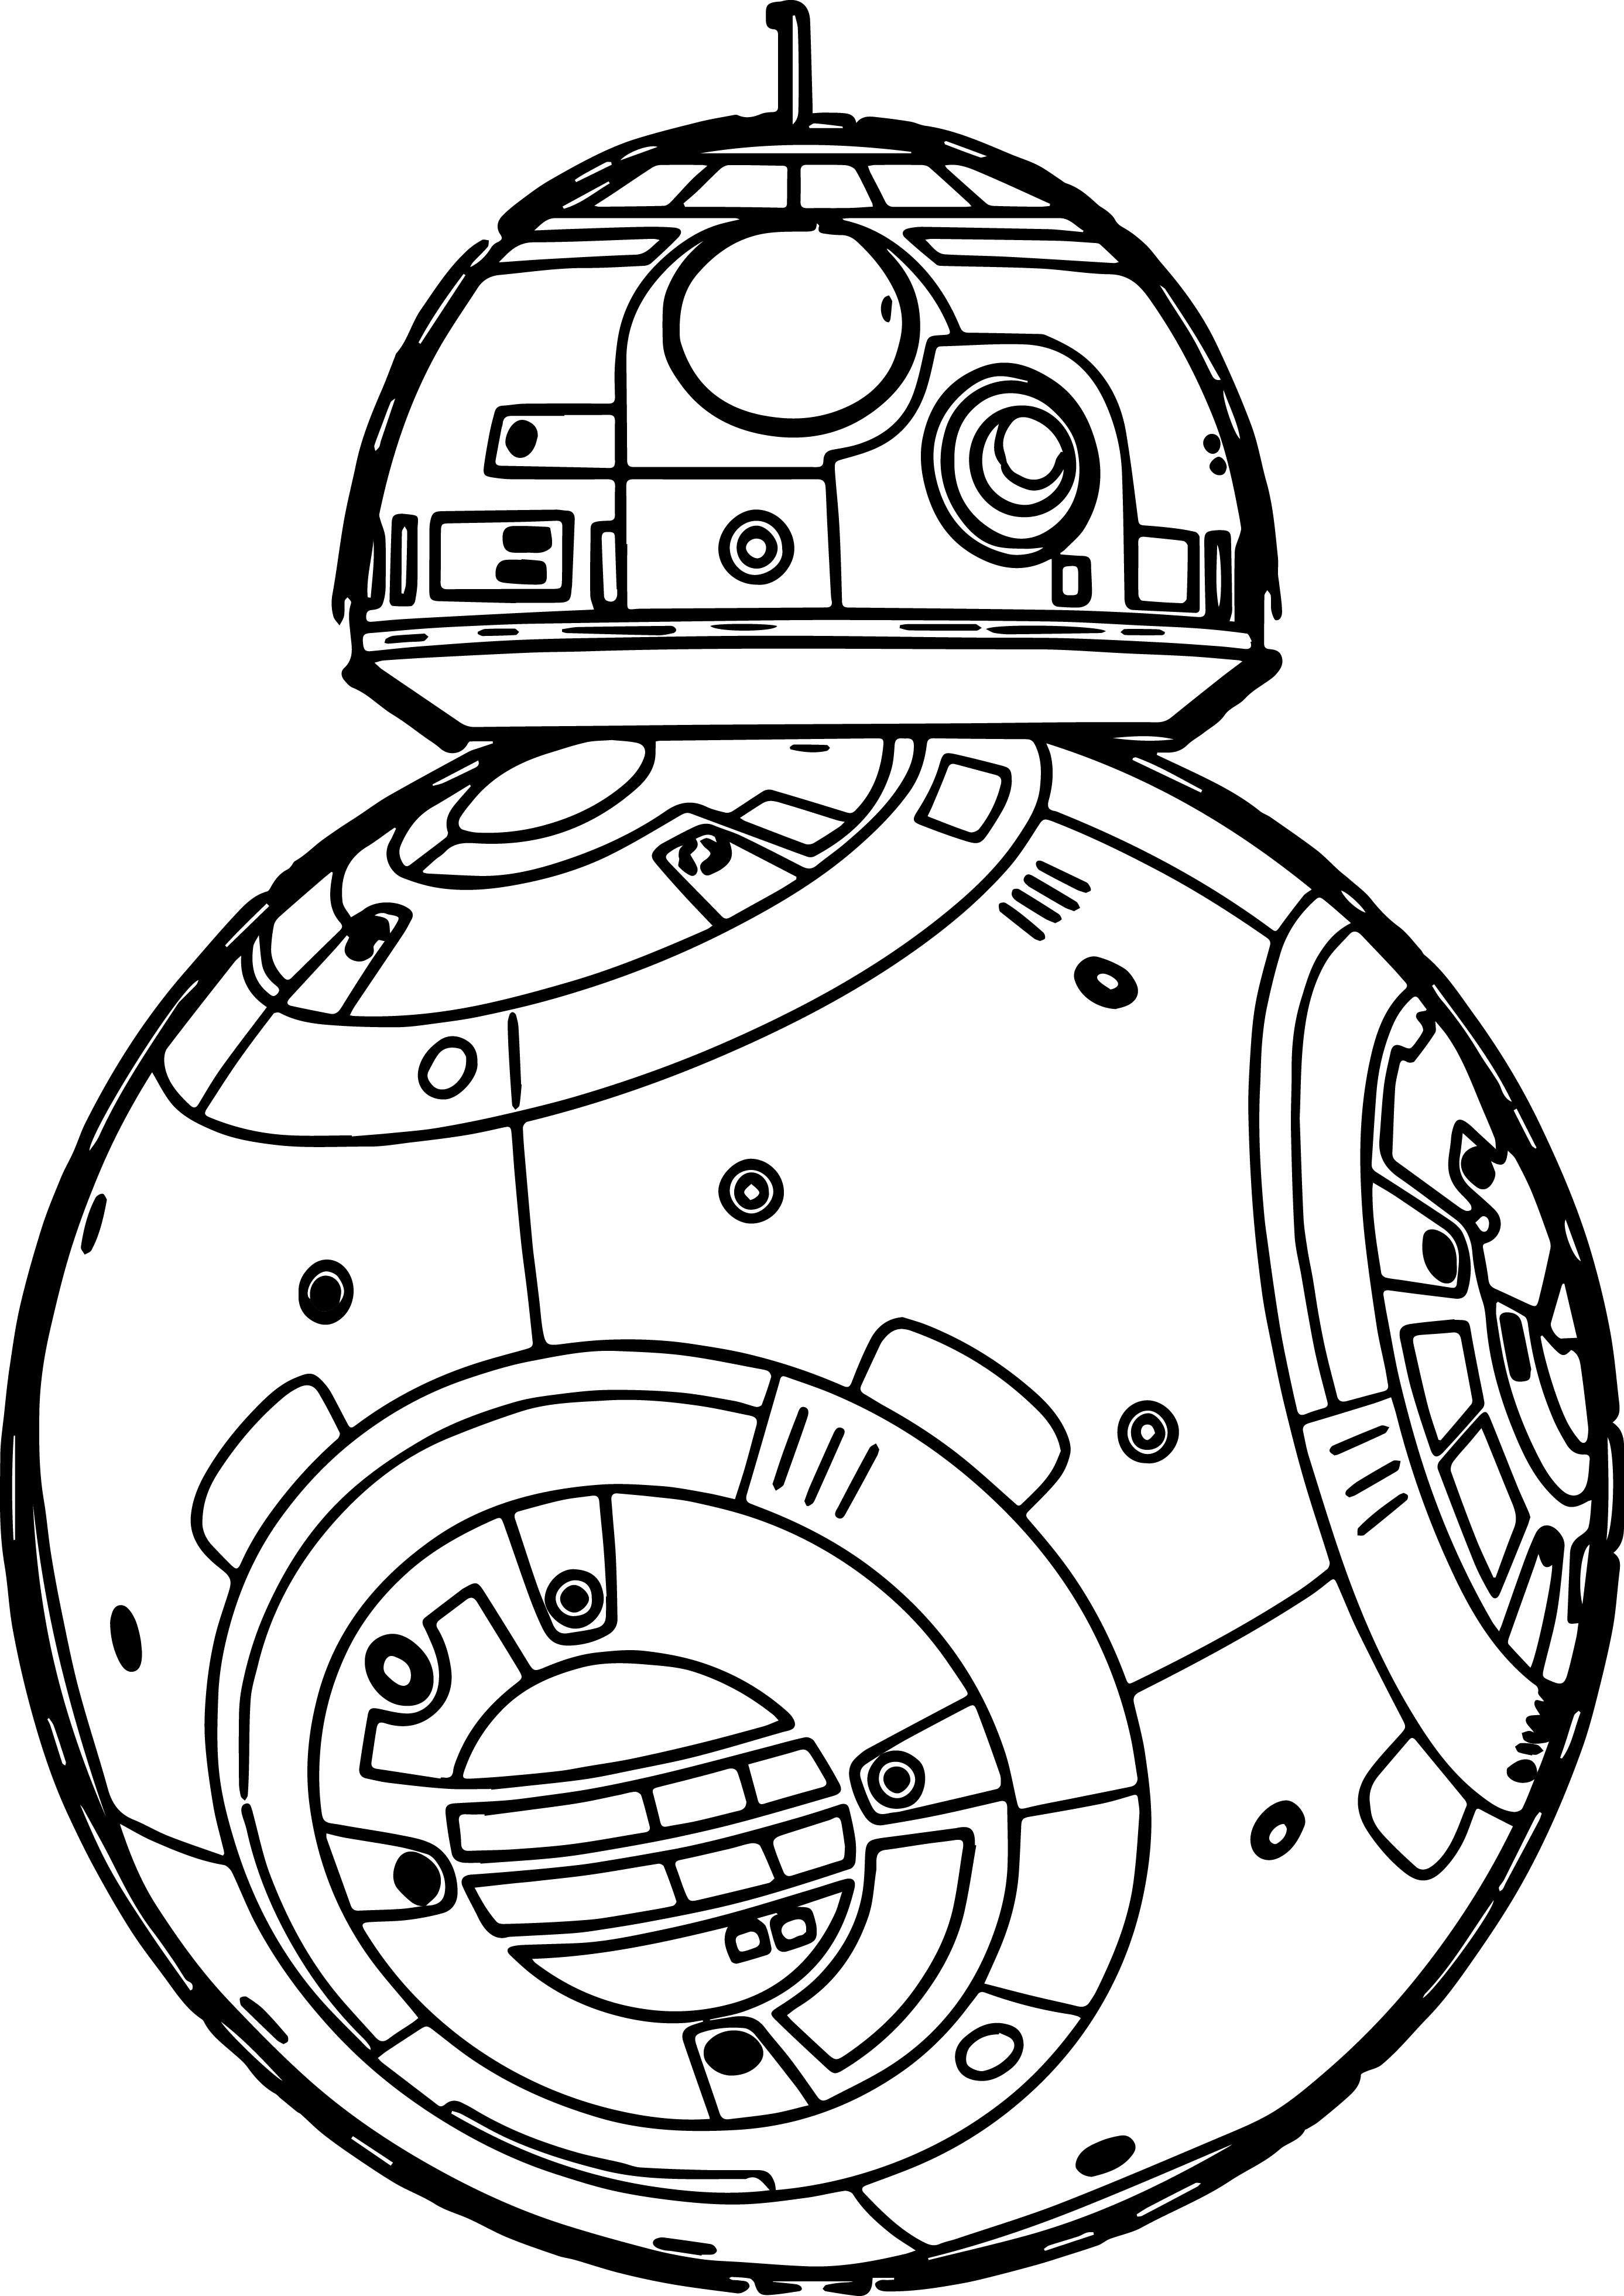 coloring pages star wars top 4 ways to get into the star wars craze adult coloring star wars pages